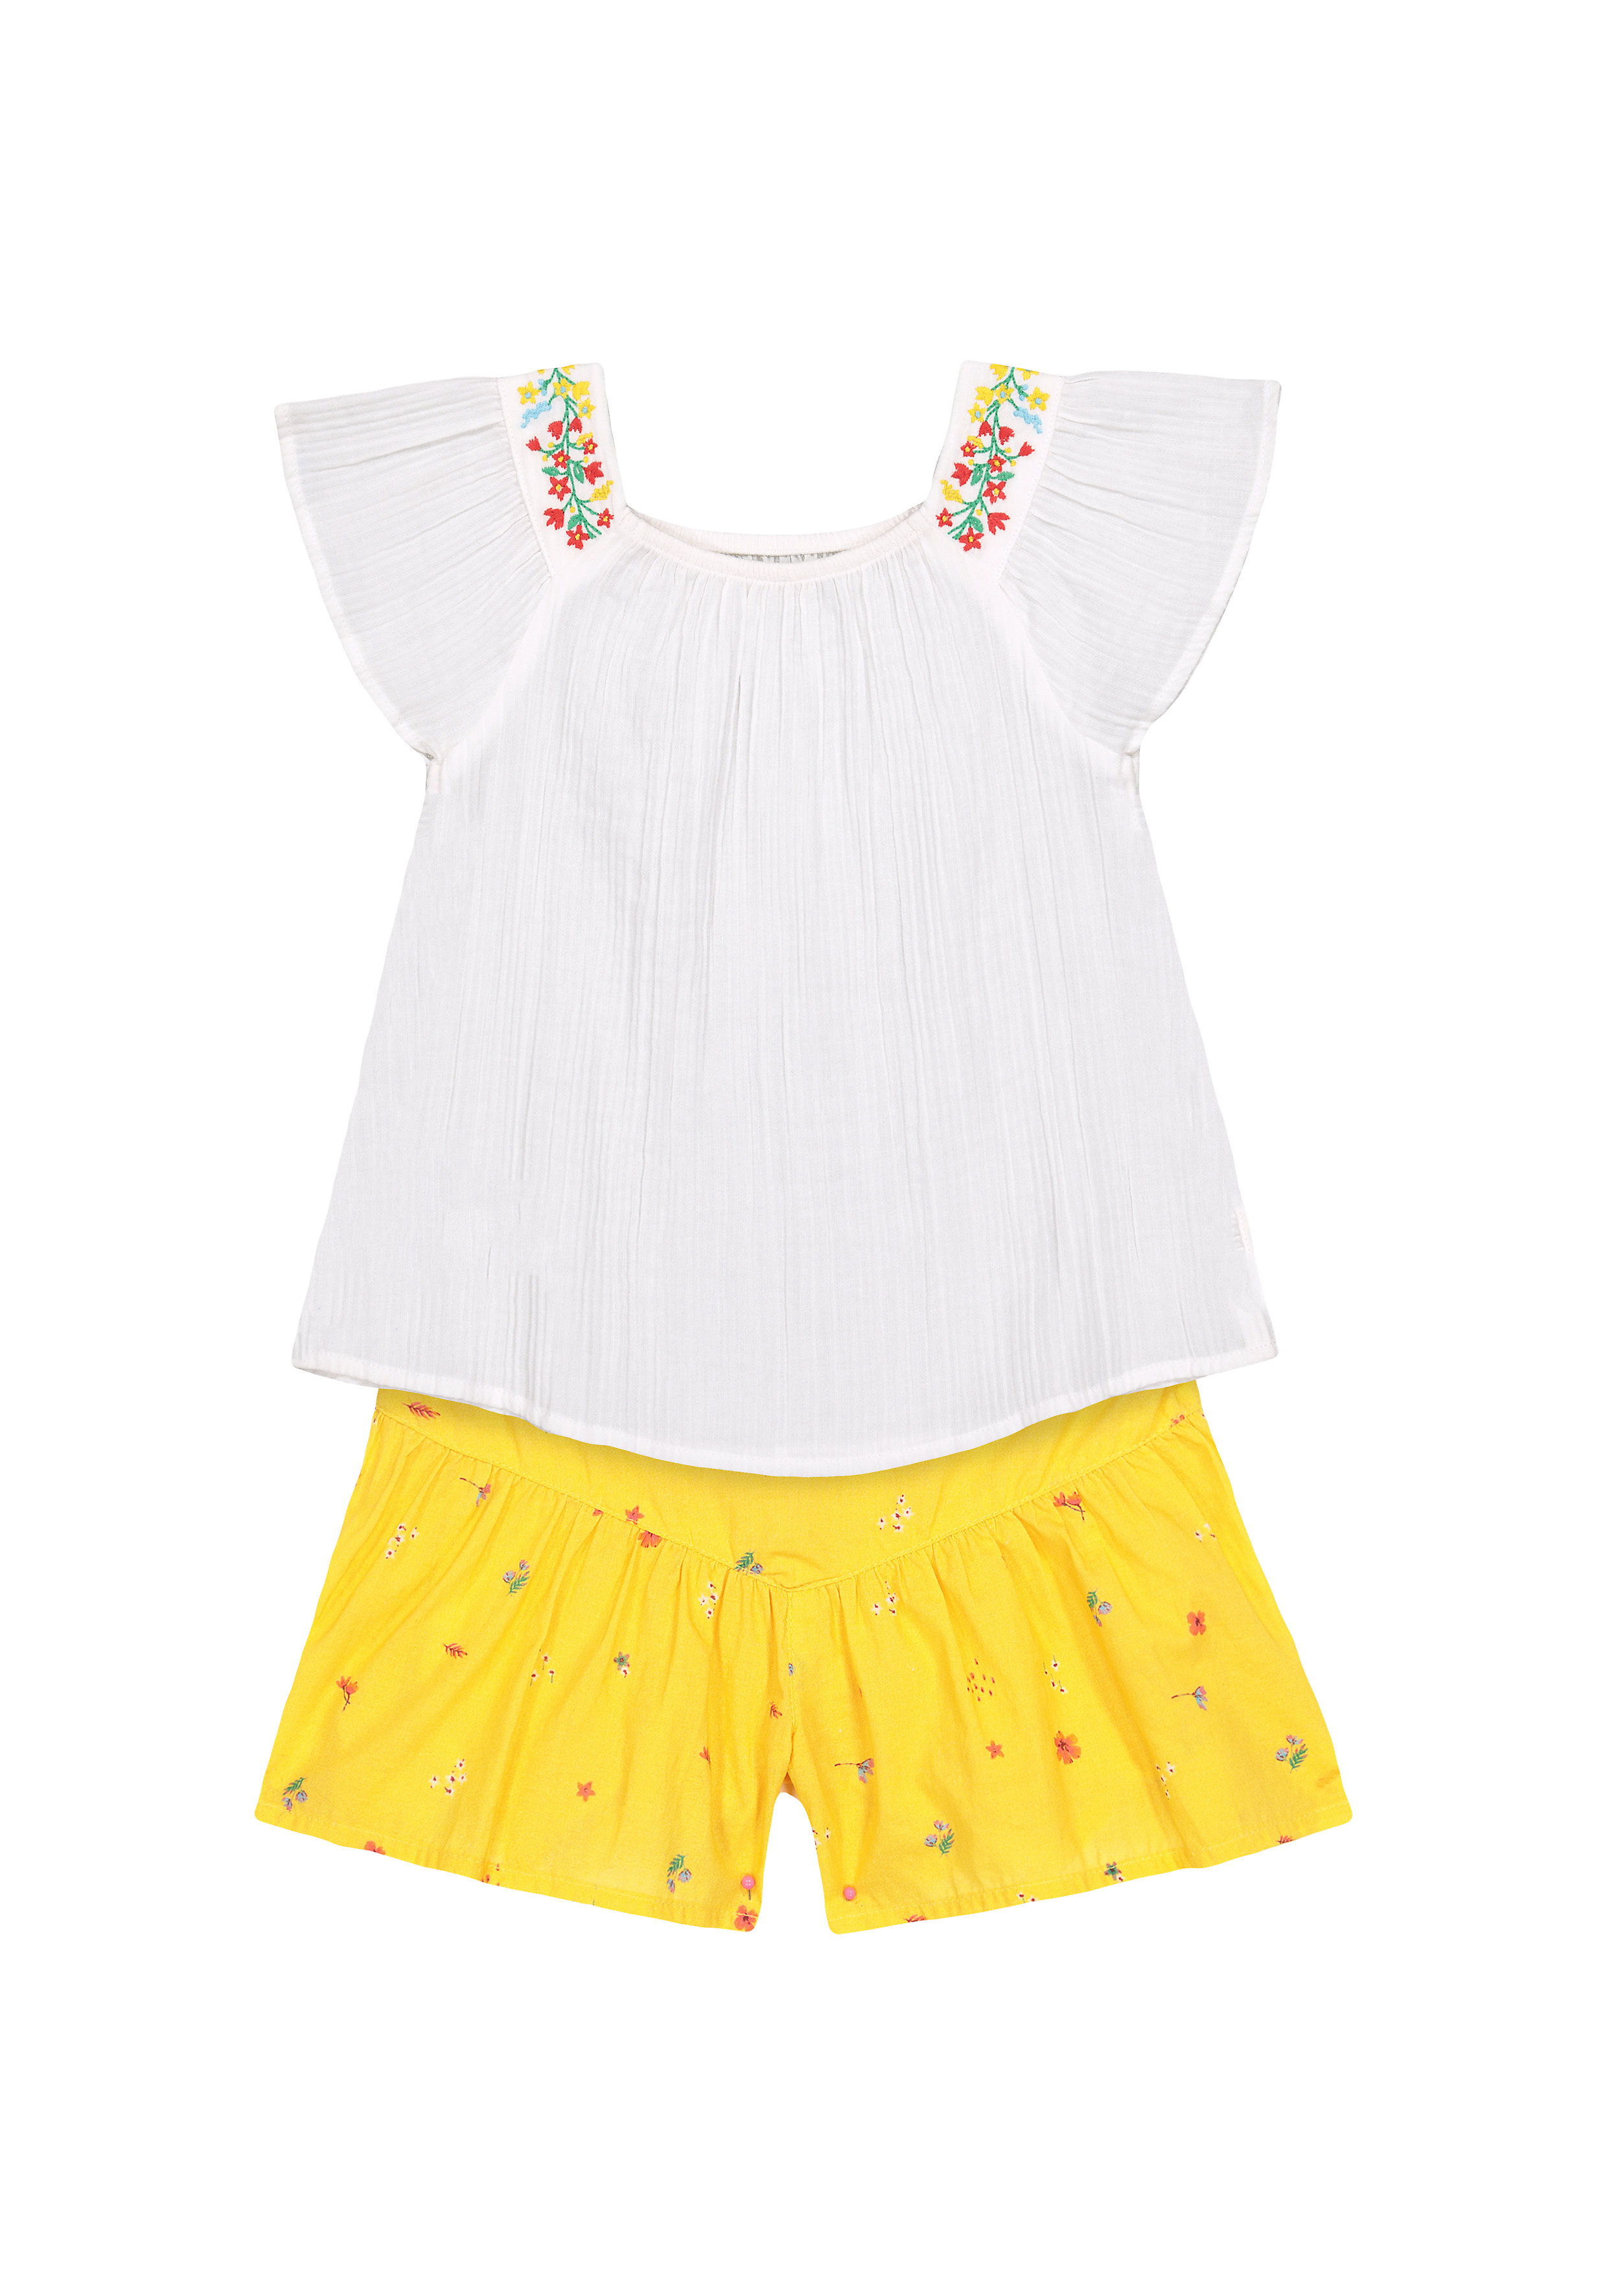 Mothercare   Girls Half Sleeves Embroidered Tops And Shorts Set - White Yellow